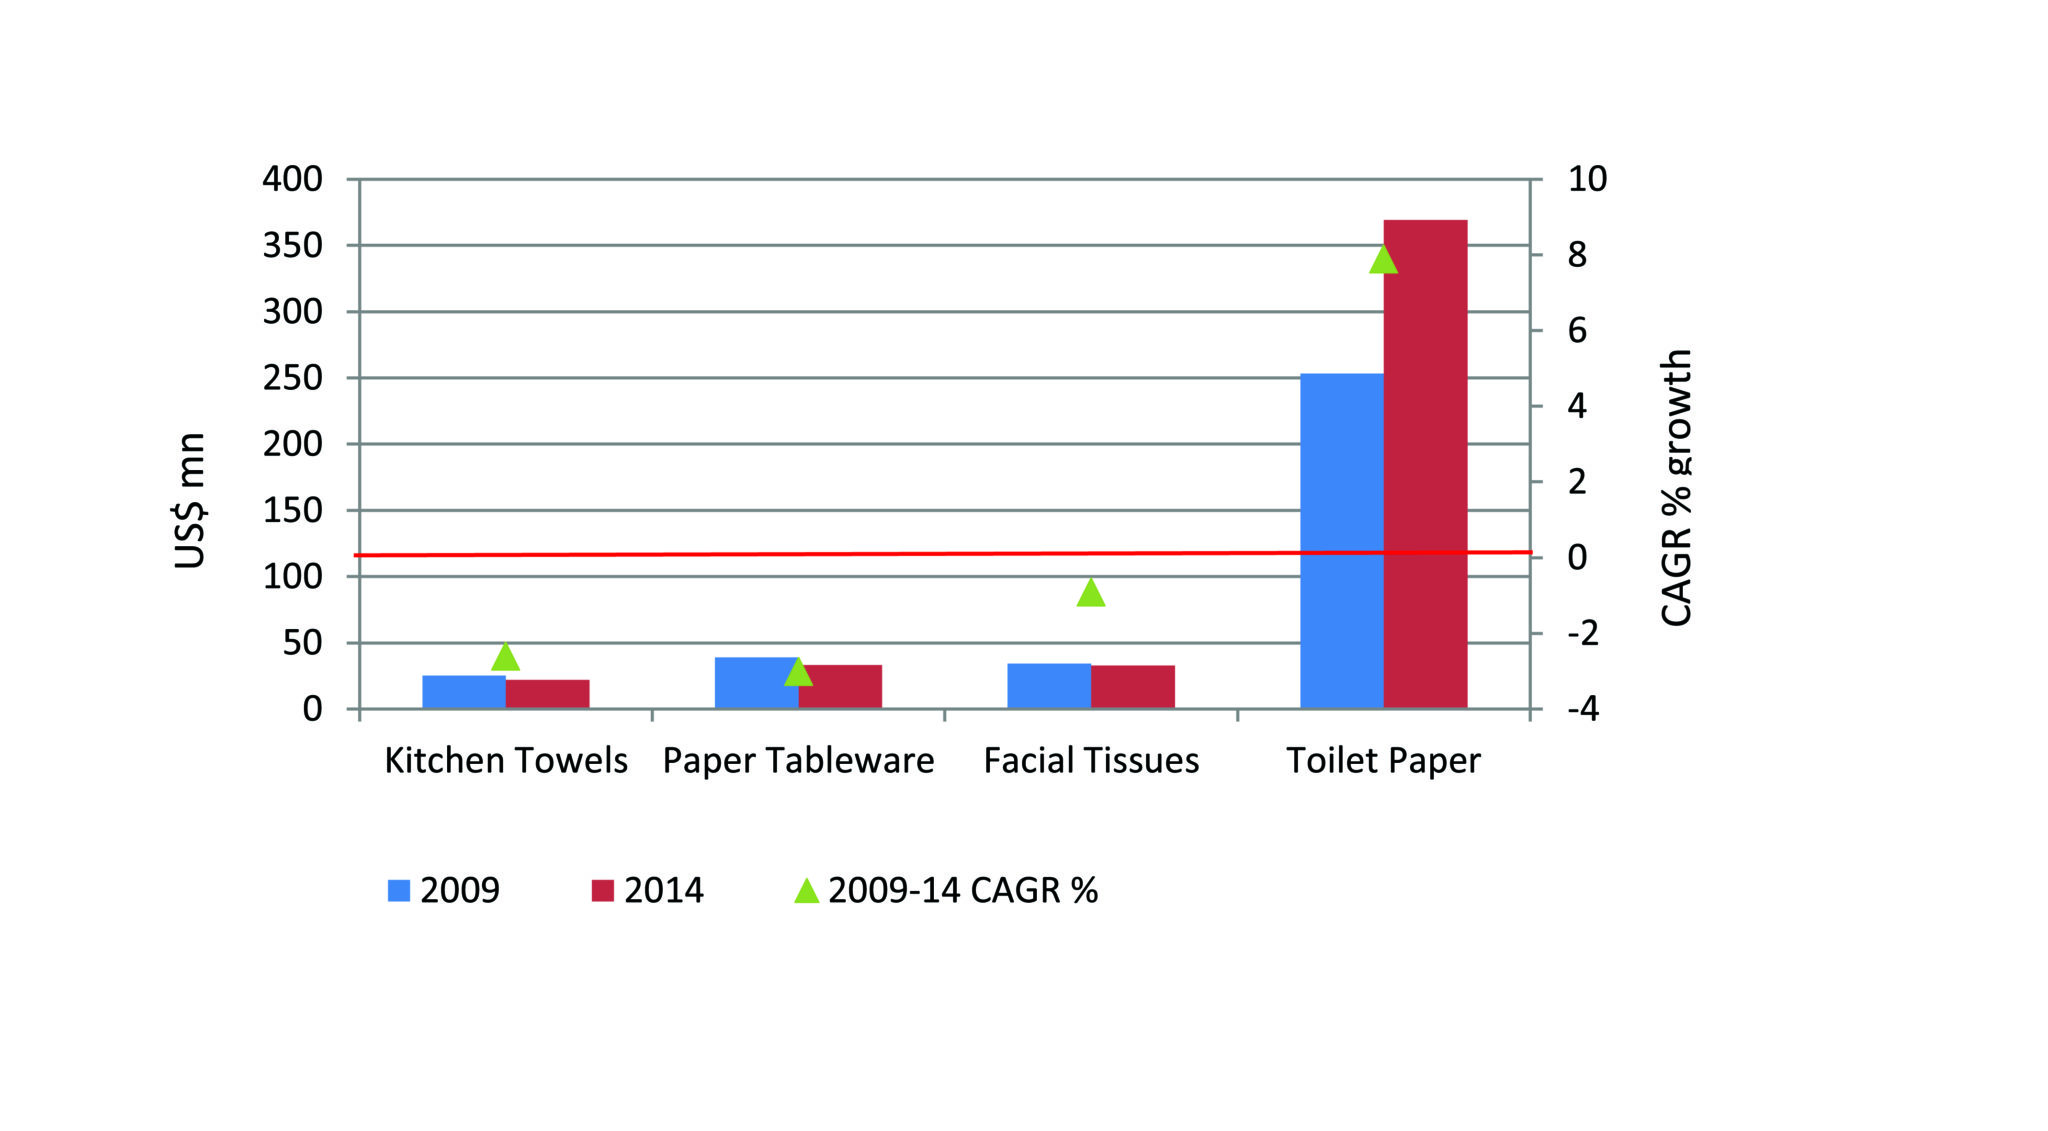 Table 1: South Africa retail tissue, US$ mn, constant value, 2009/2014